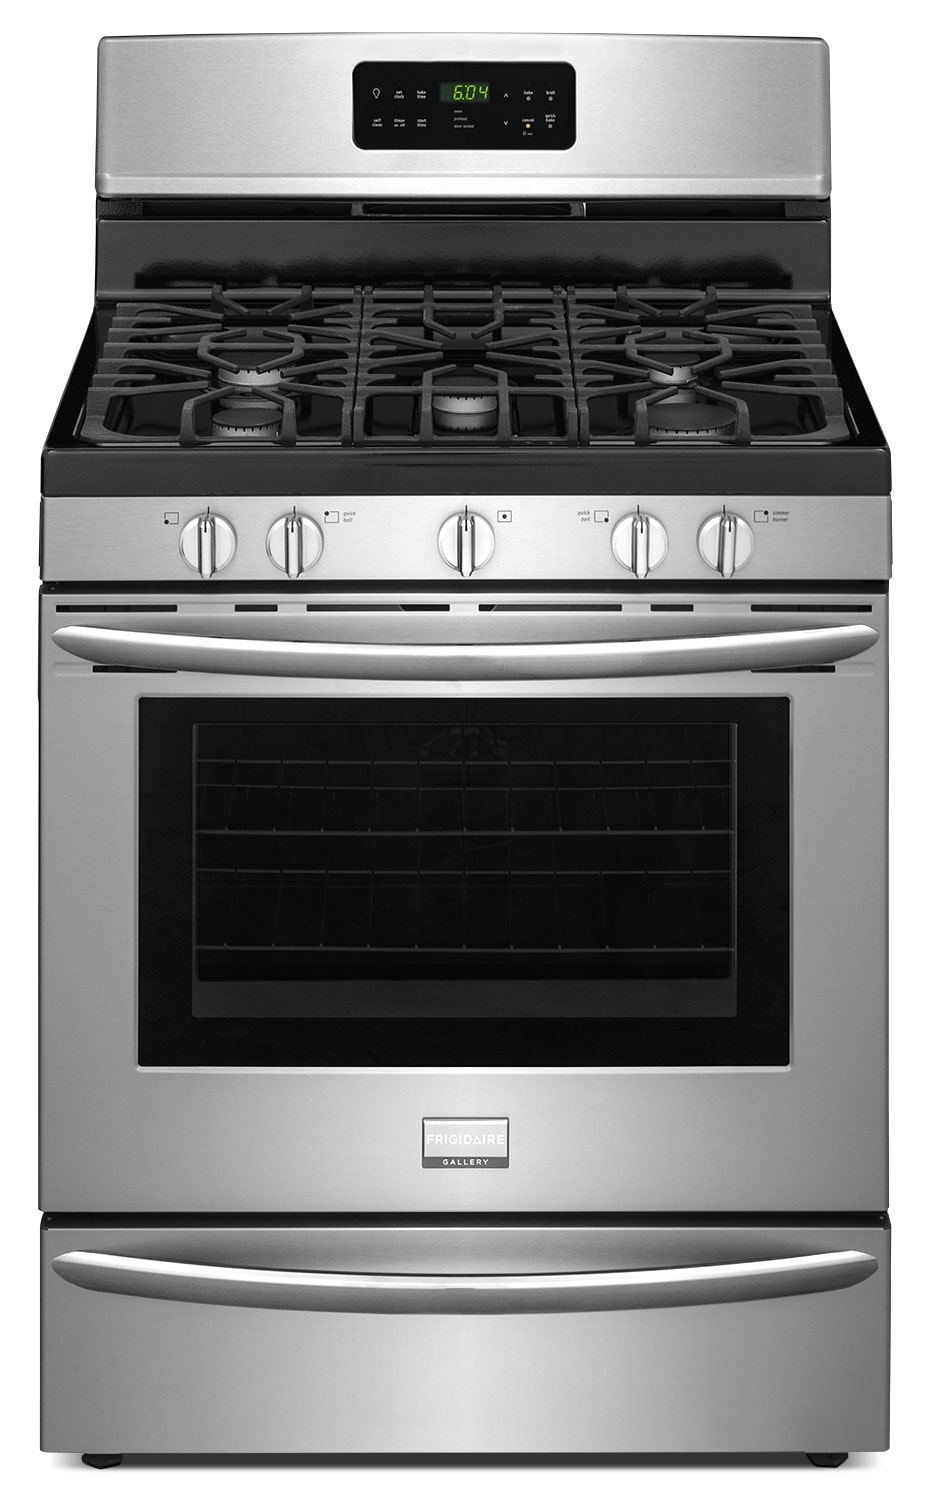 Cooking Products - Frigidaire Gallery 5.0 Cu. Ft. Freestanding Gas Range – Stainless Steel